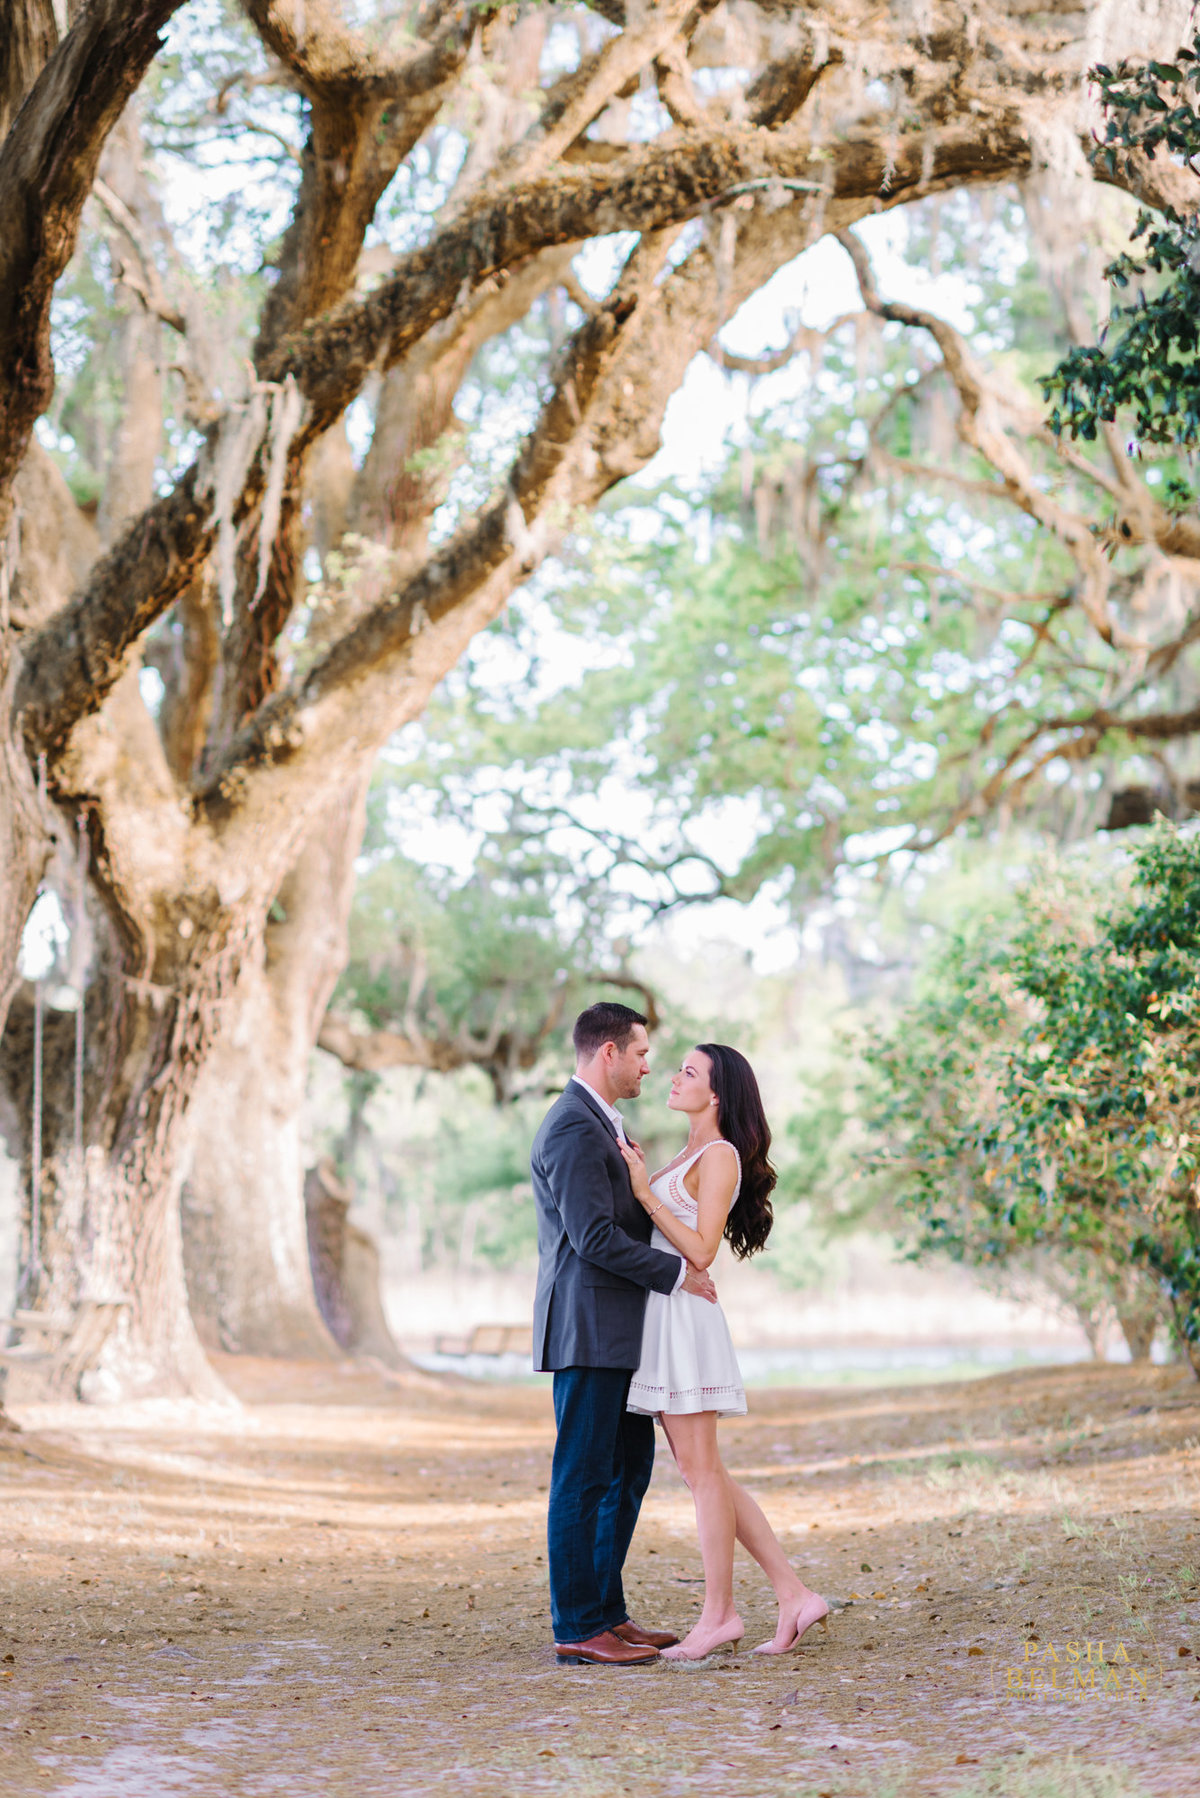 Charleston Engagement Photography | Engagement Pictures in Charleston | Engagement Portraits by Pasha Belman Photographer-4